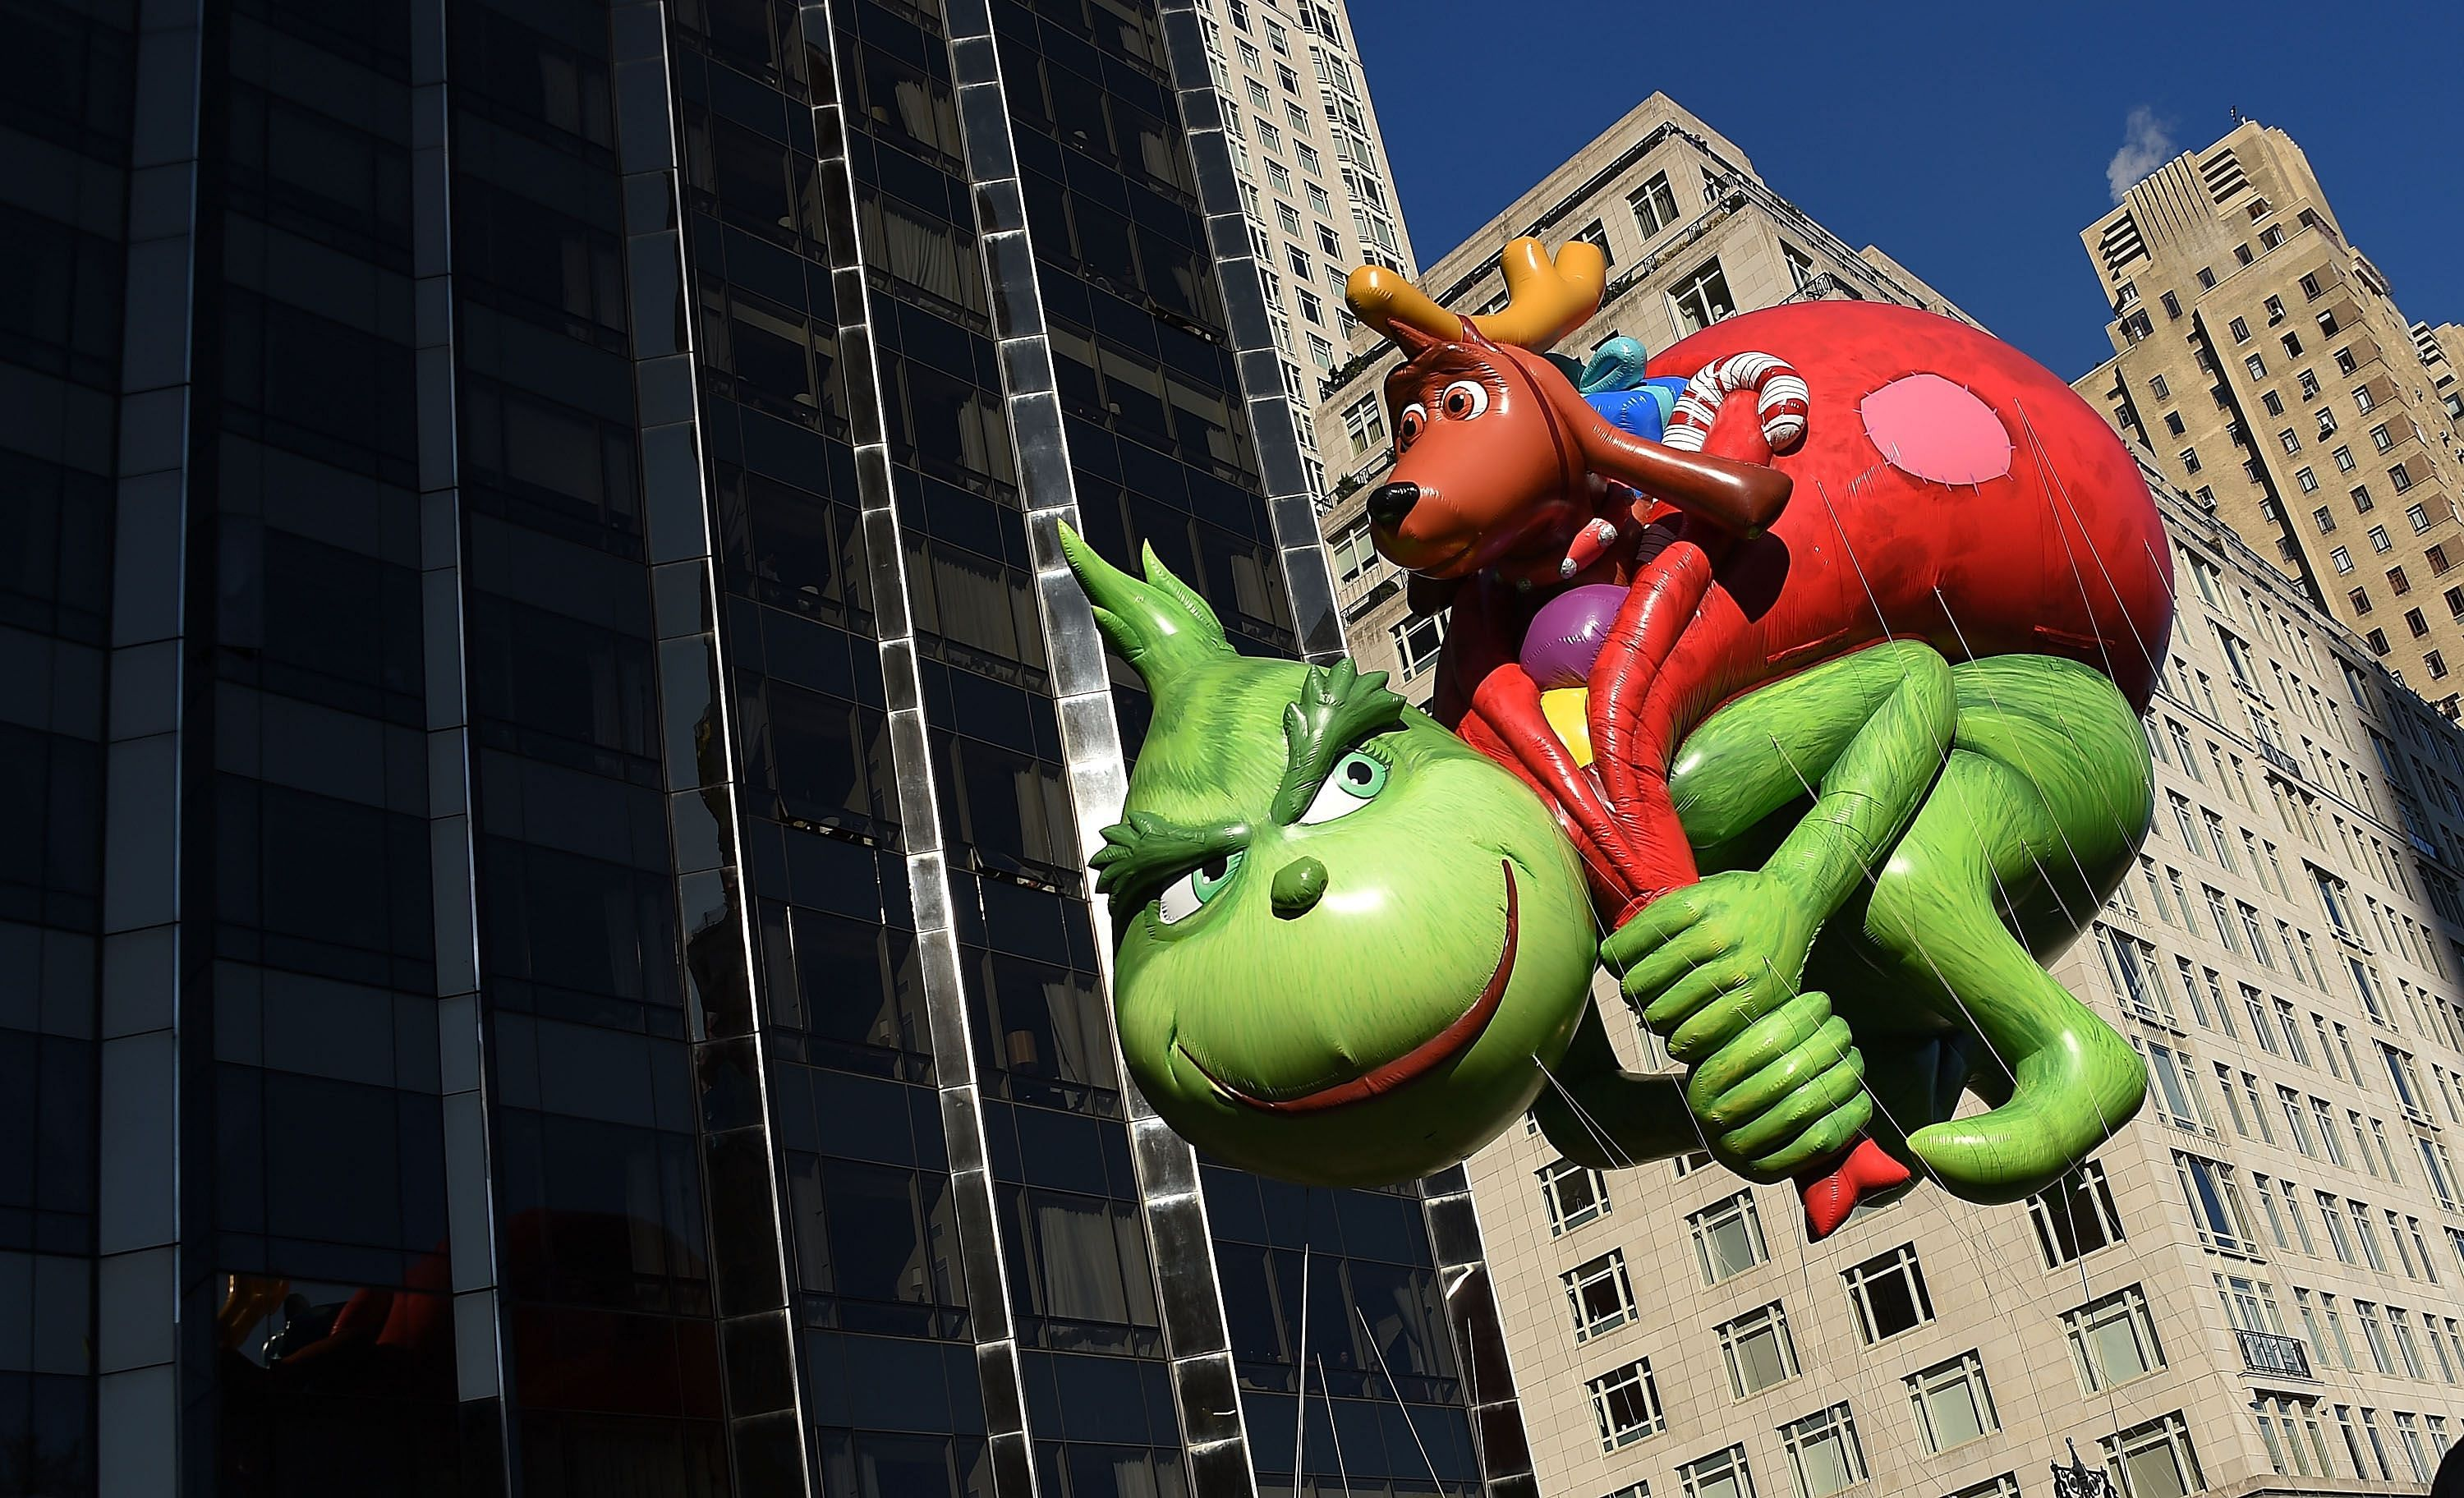 Steer clear of the Grinch. This green children's story character was created by Dr Seuss for his book, How The Grinch Stole Christmas. The balloon in his likeness is seen here during the 91st Annual Macy's Thanksgiving Day Parade in New York City. PHOTO